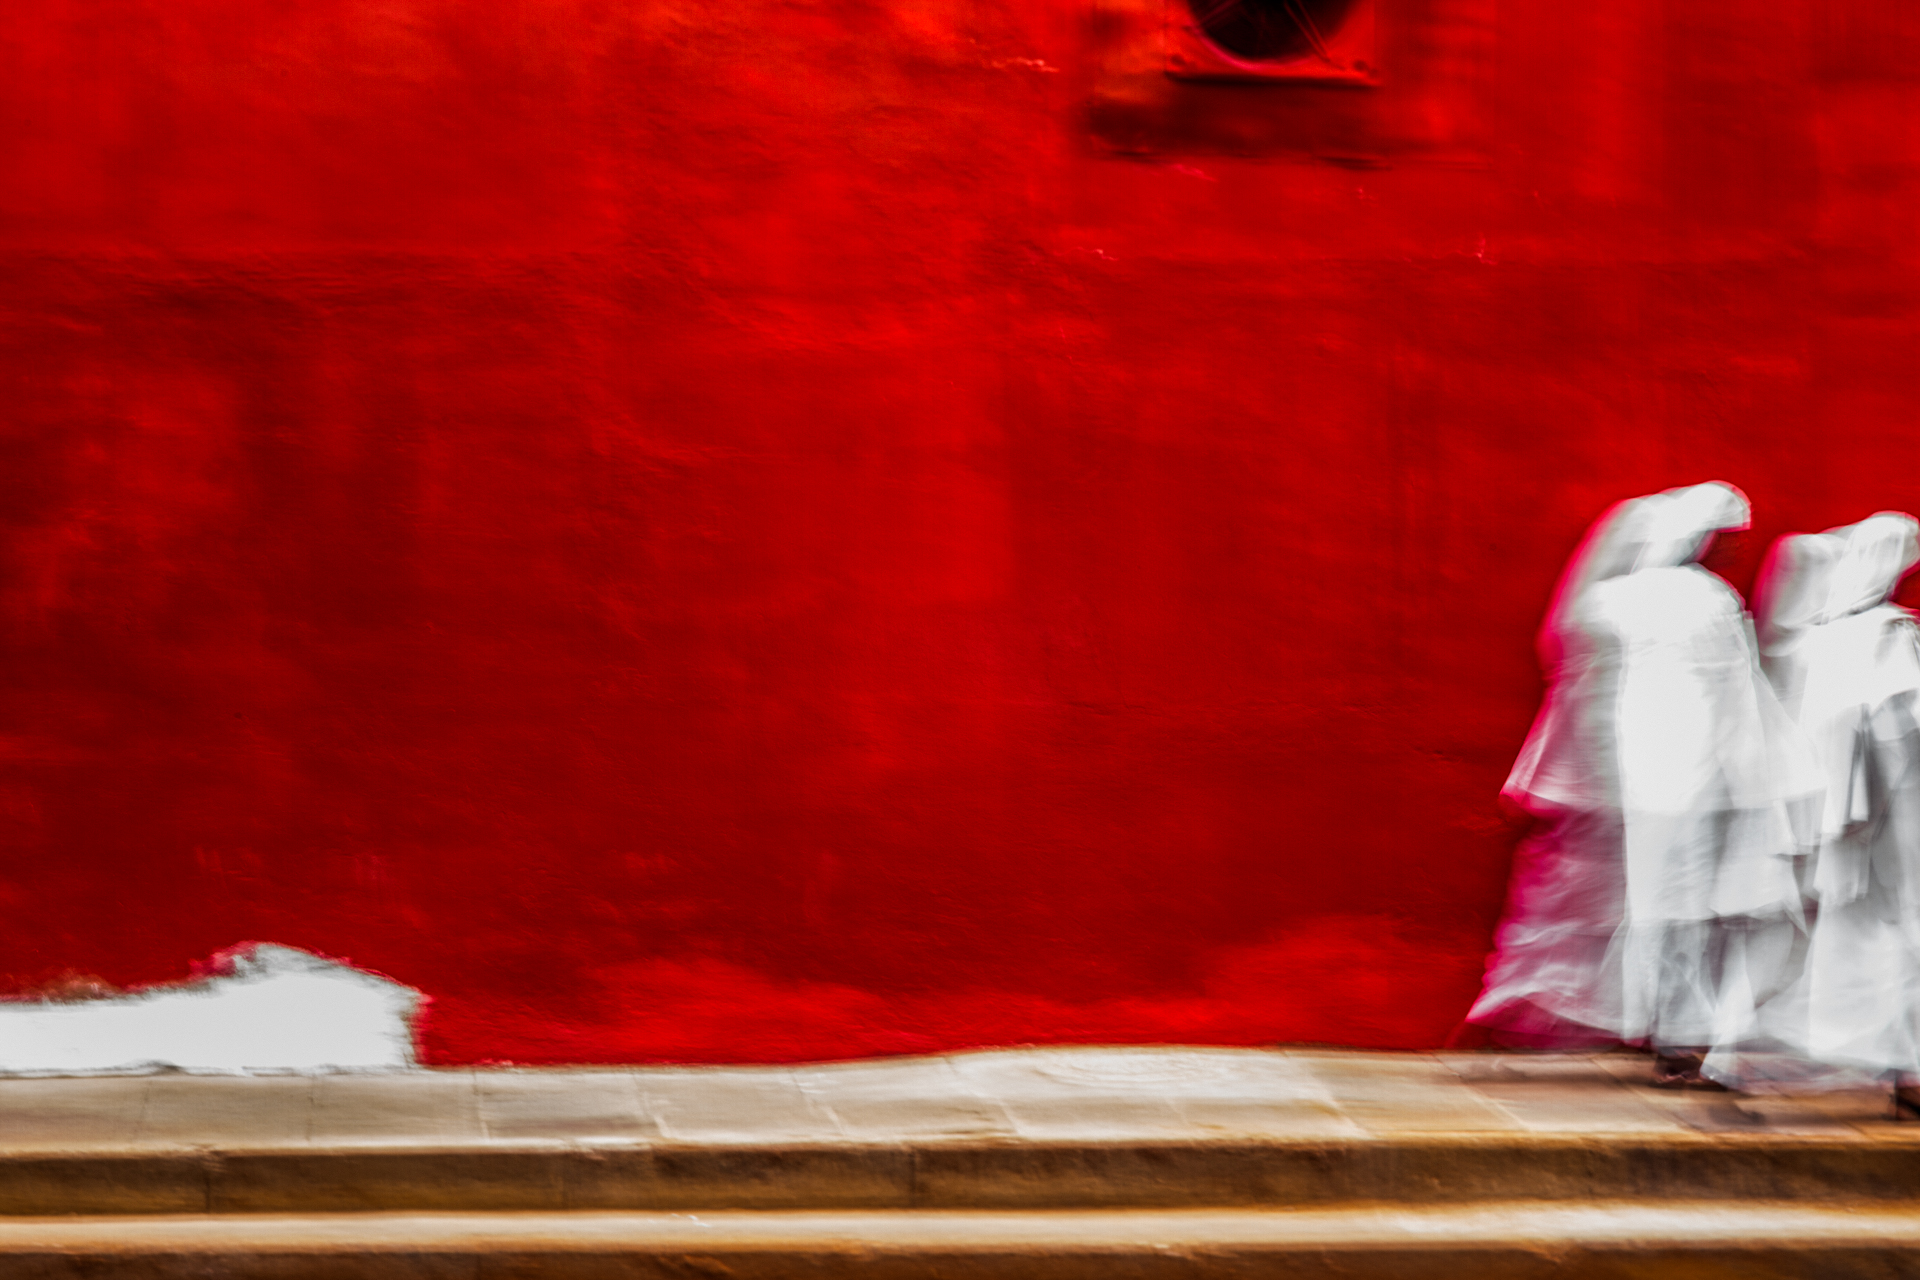 Impressionistic photograph of two women in white cloaks, walking past a red coloured wall in Jeppestown, Johannesburg